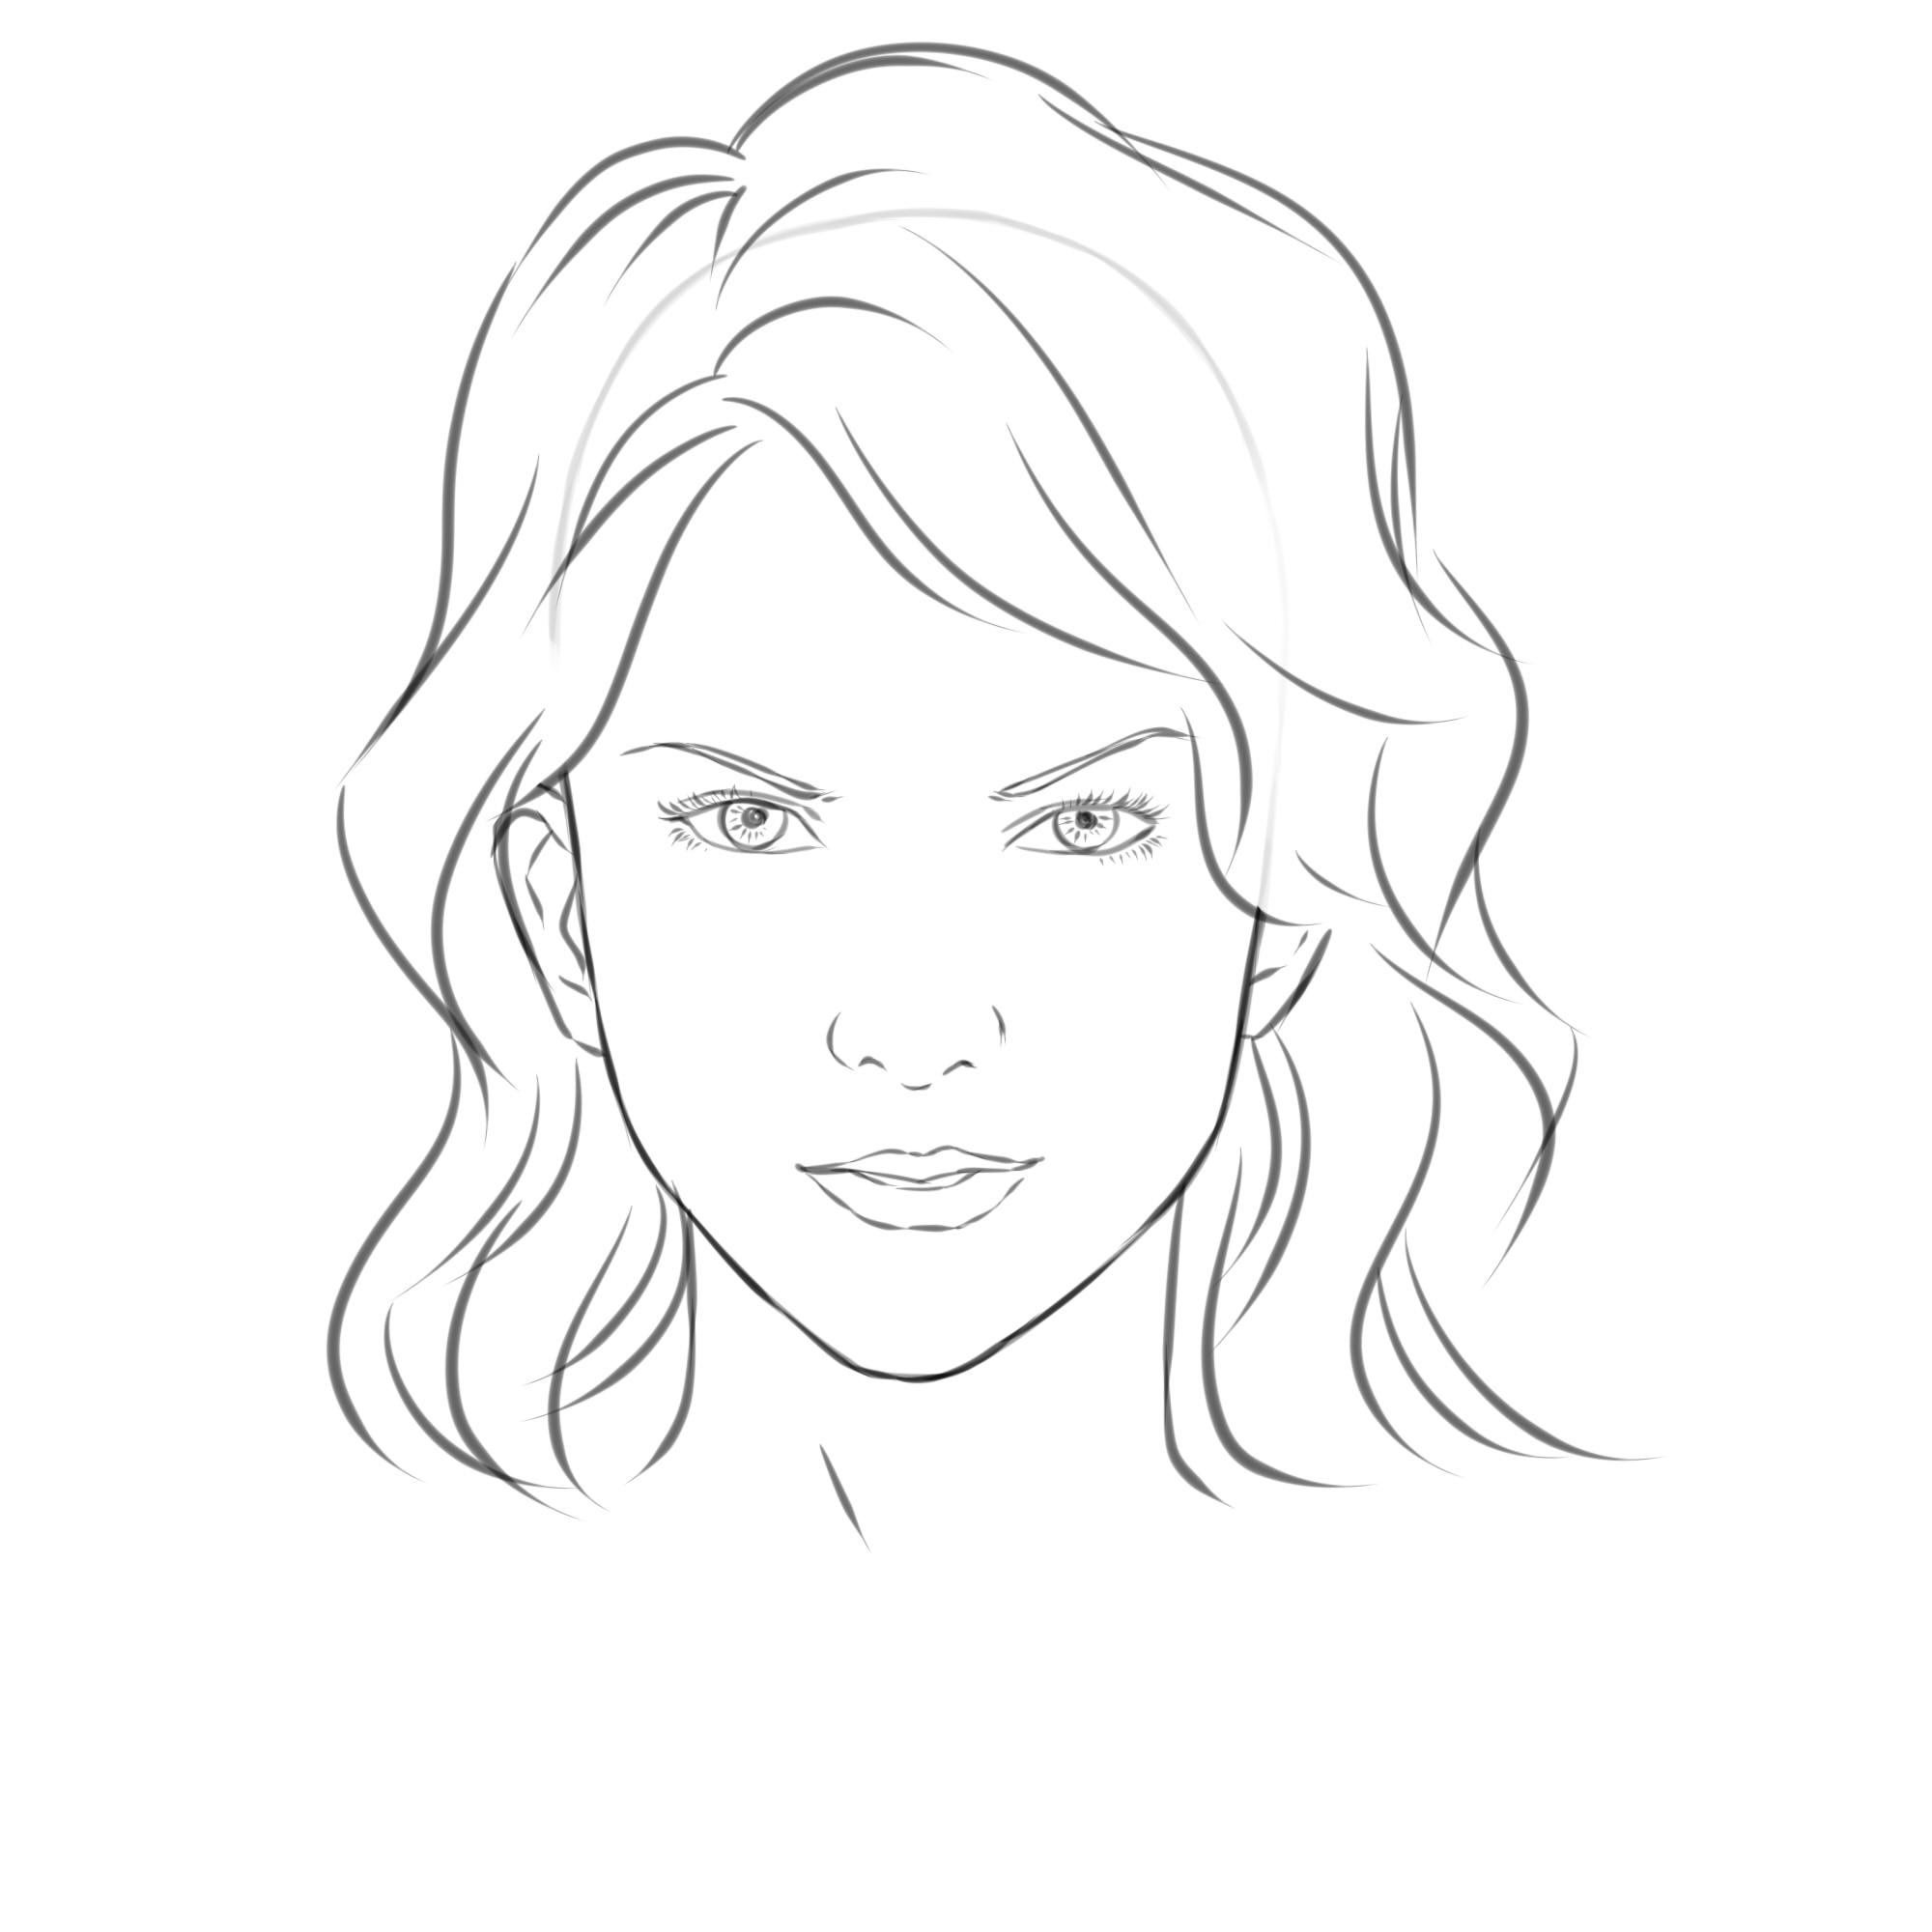 2000x2000 Simple Faces Sketches For Beginners How To Draw A Male And Female